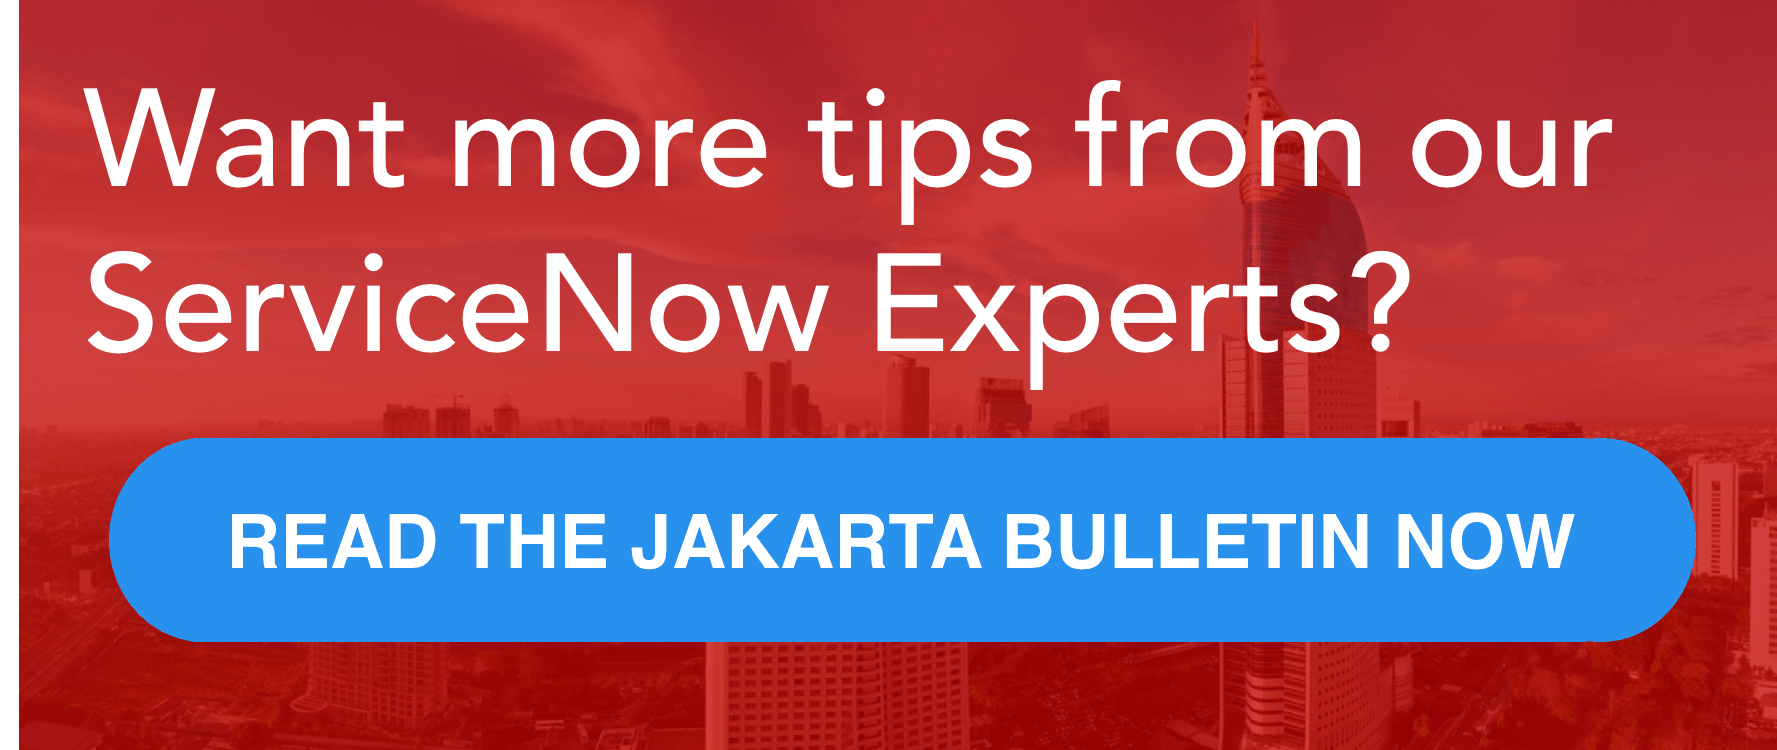 ServiceNow HR: Jakarta Brings Major Time & Cost Savings | Acorio